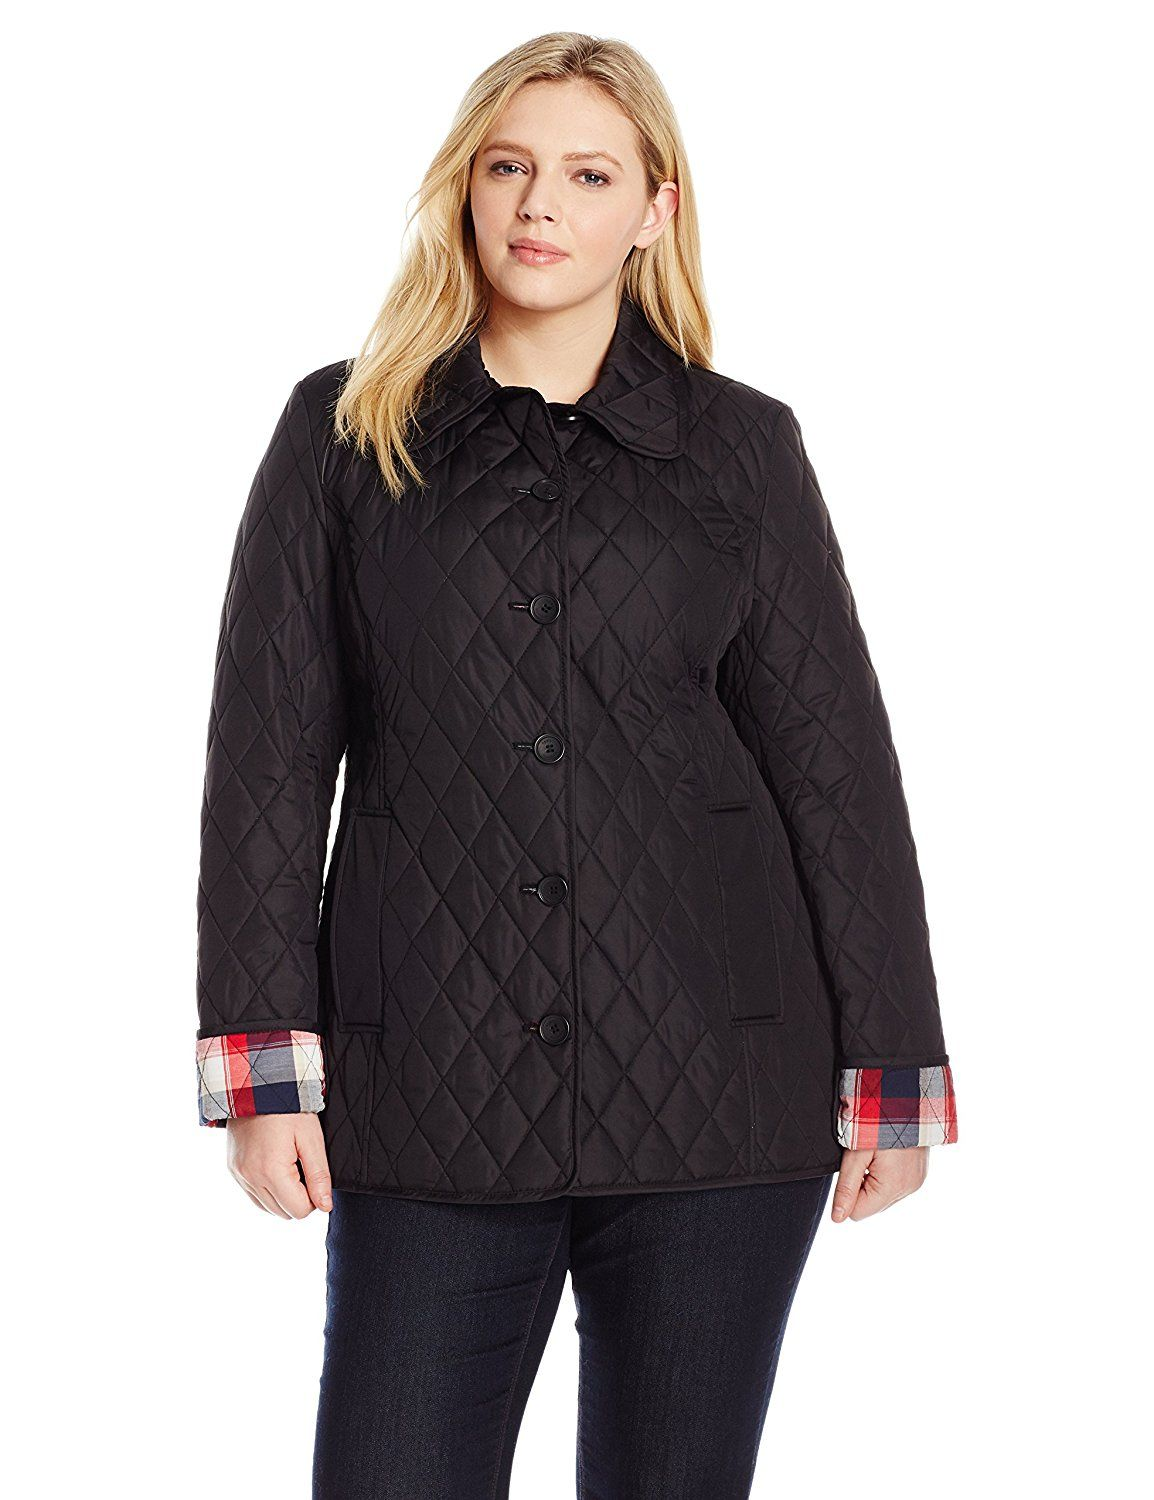 Tommy Hilfiger Women S Plus Size Quilted Jacket Check